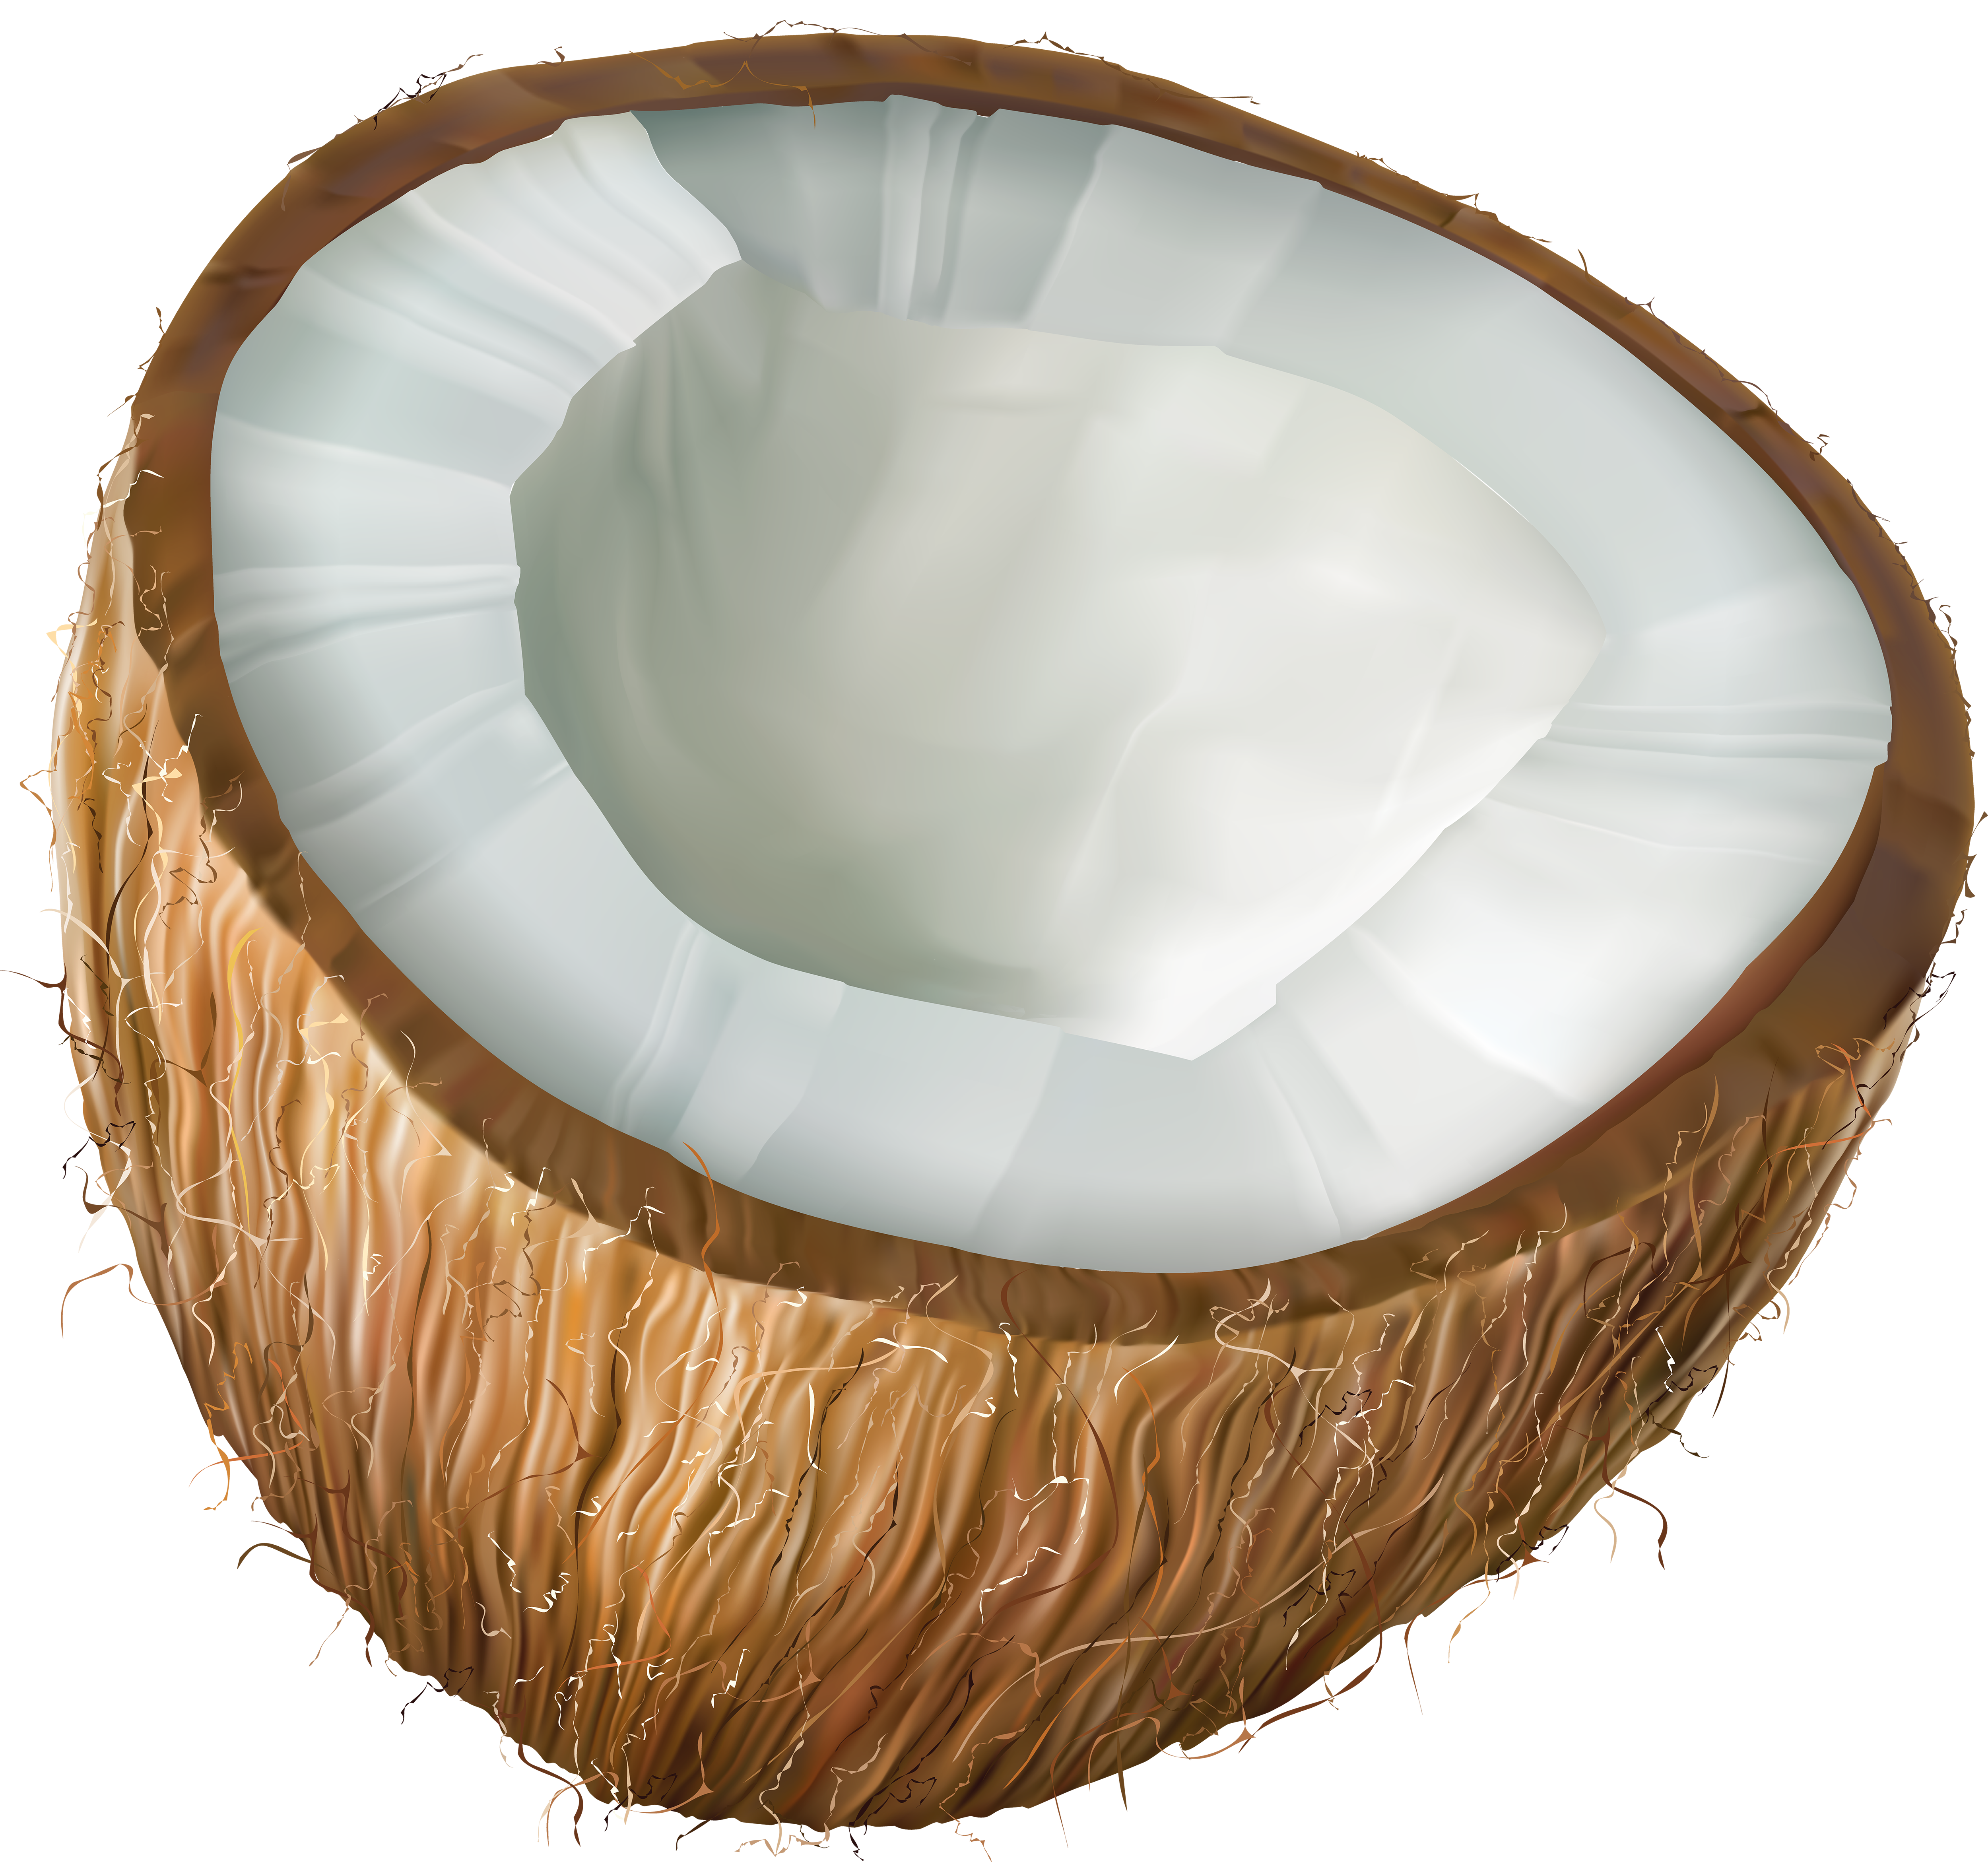 jpg free library Transparent png clip art. Coconut clipart